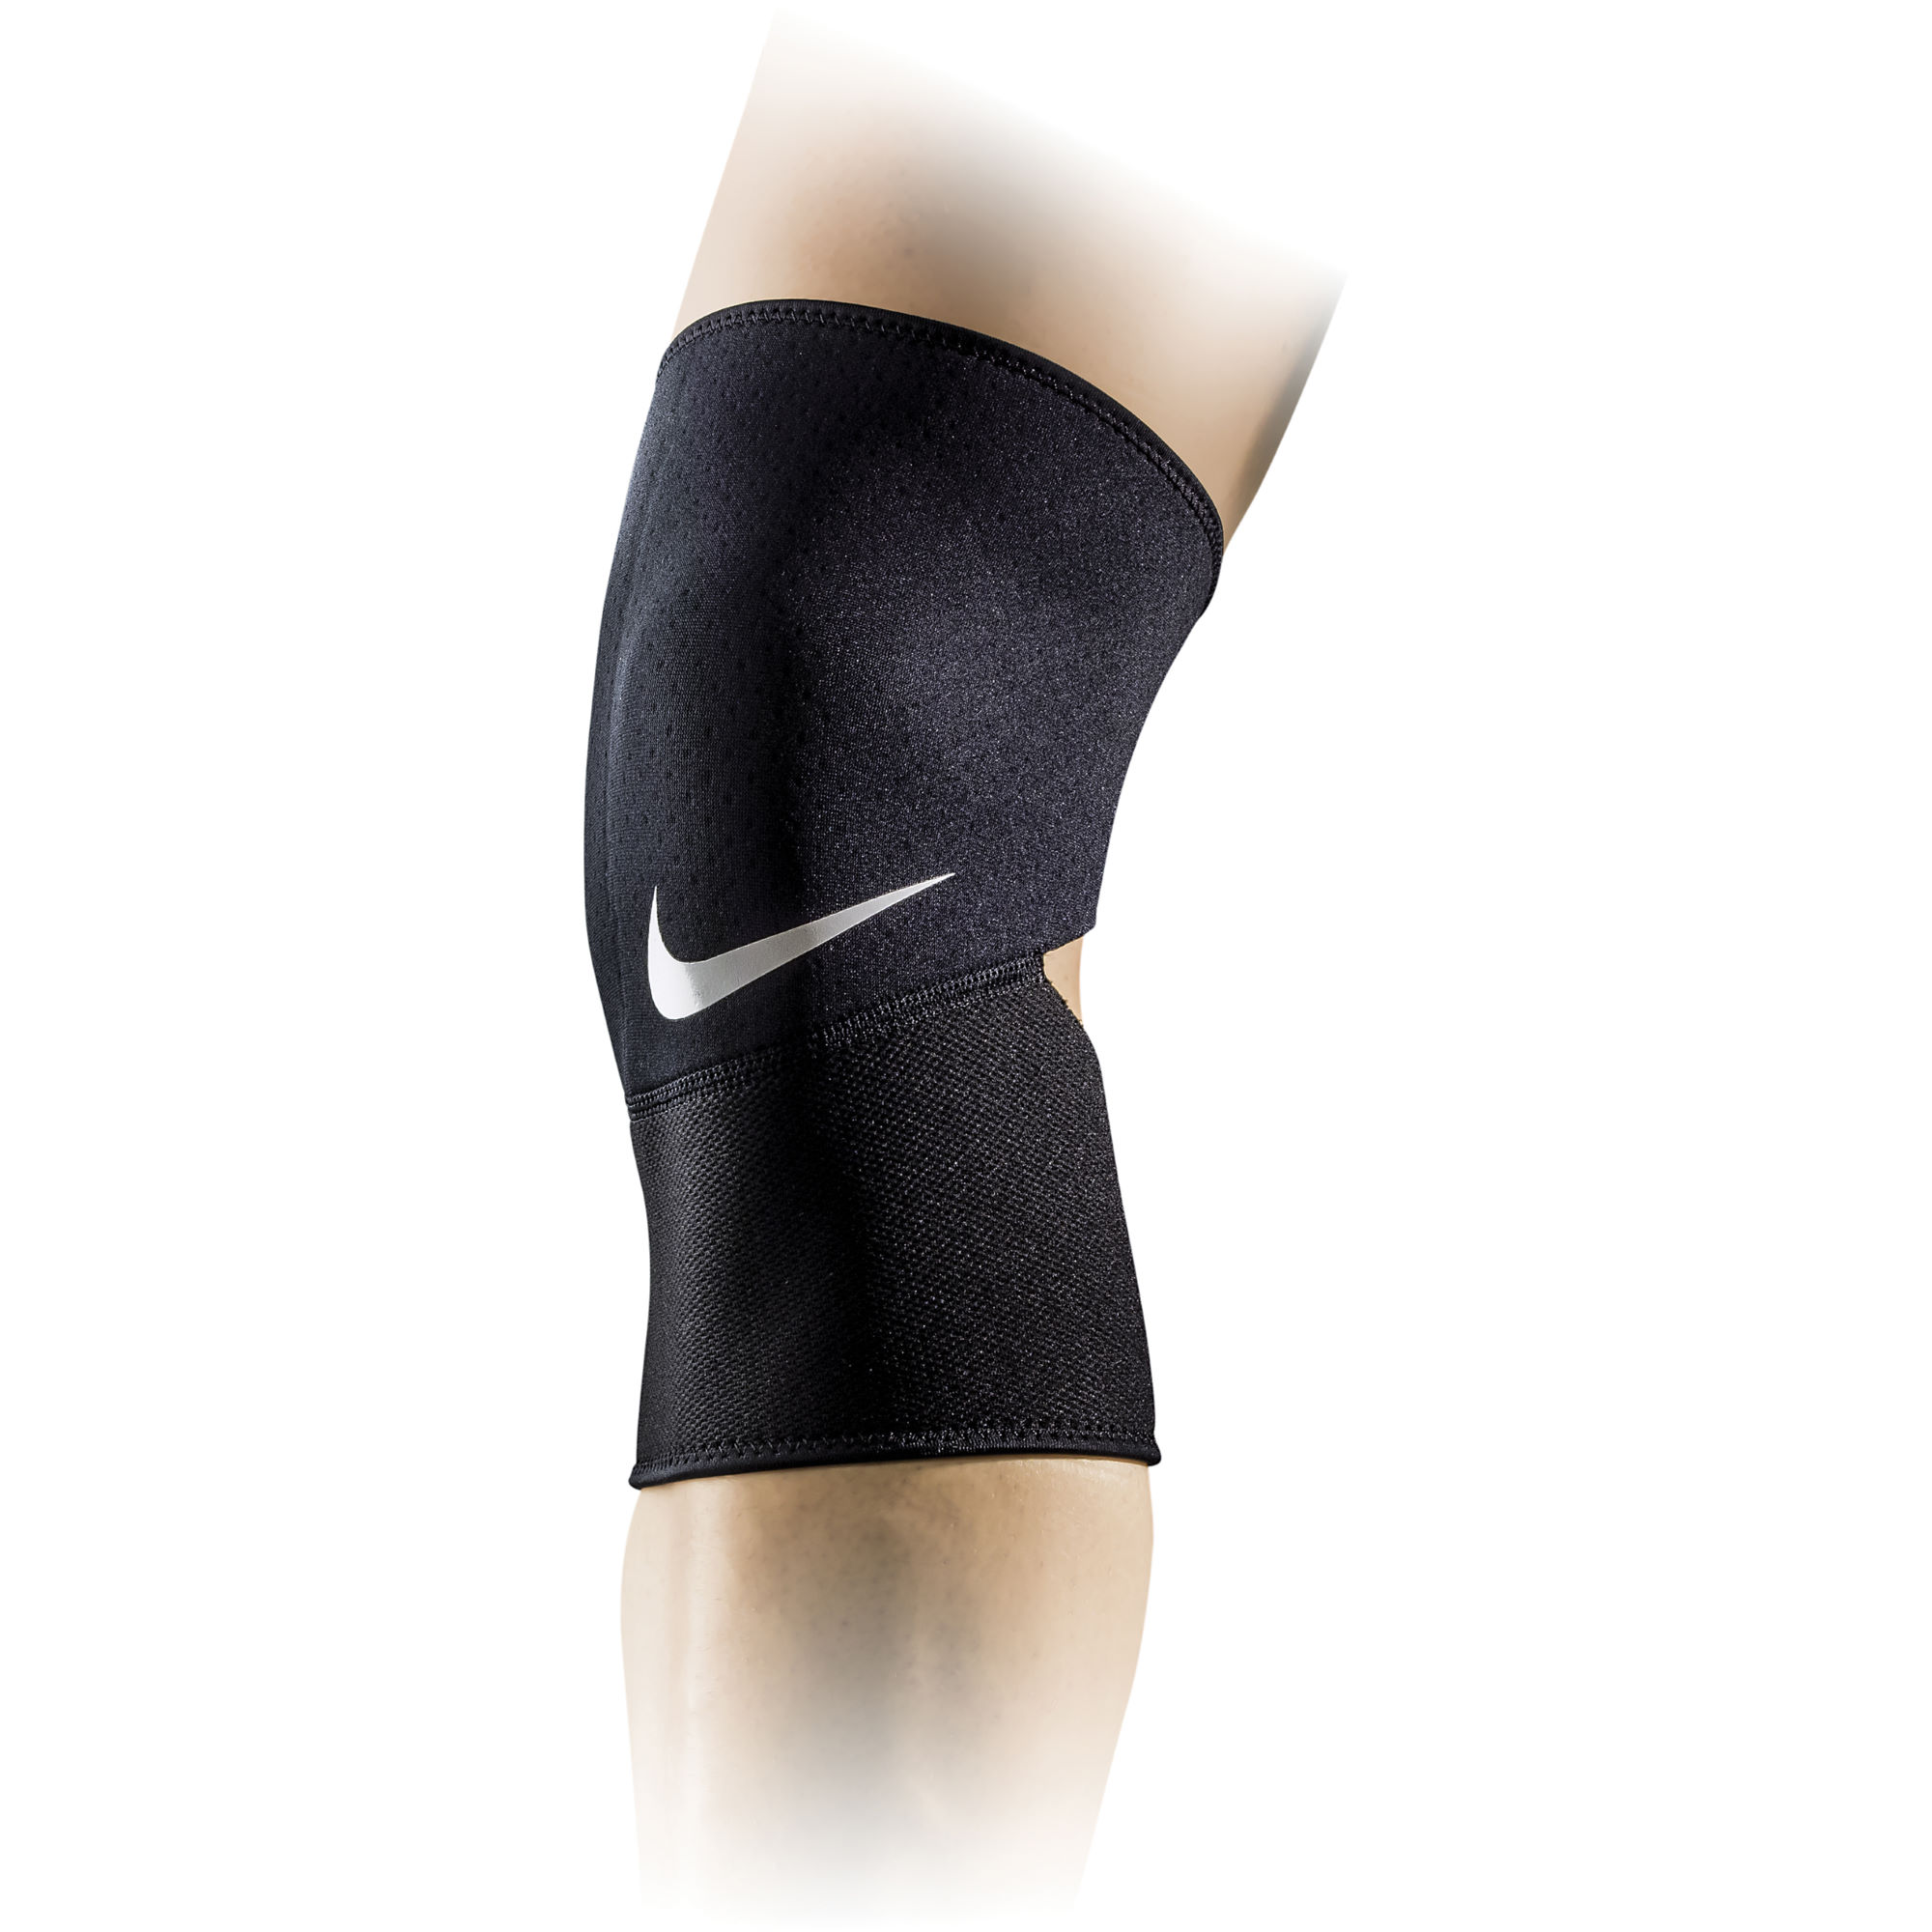 wiggle nike pro combat closed patella knee sleeve ho15 first aid injury. Black Bedroom Furniture Sets. Home Design Ideas